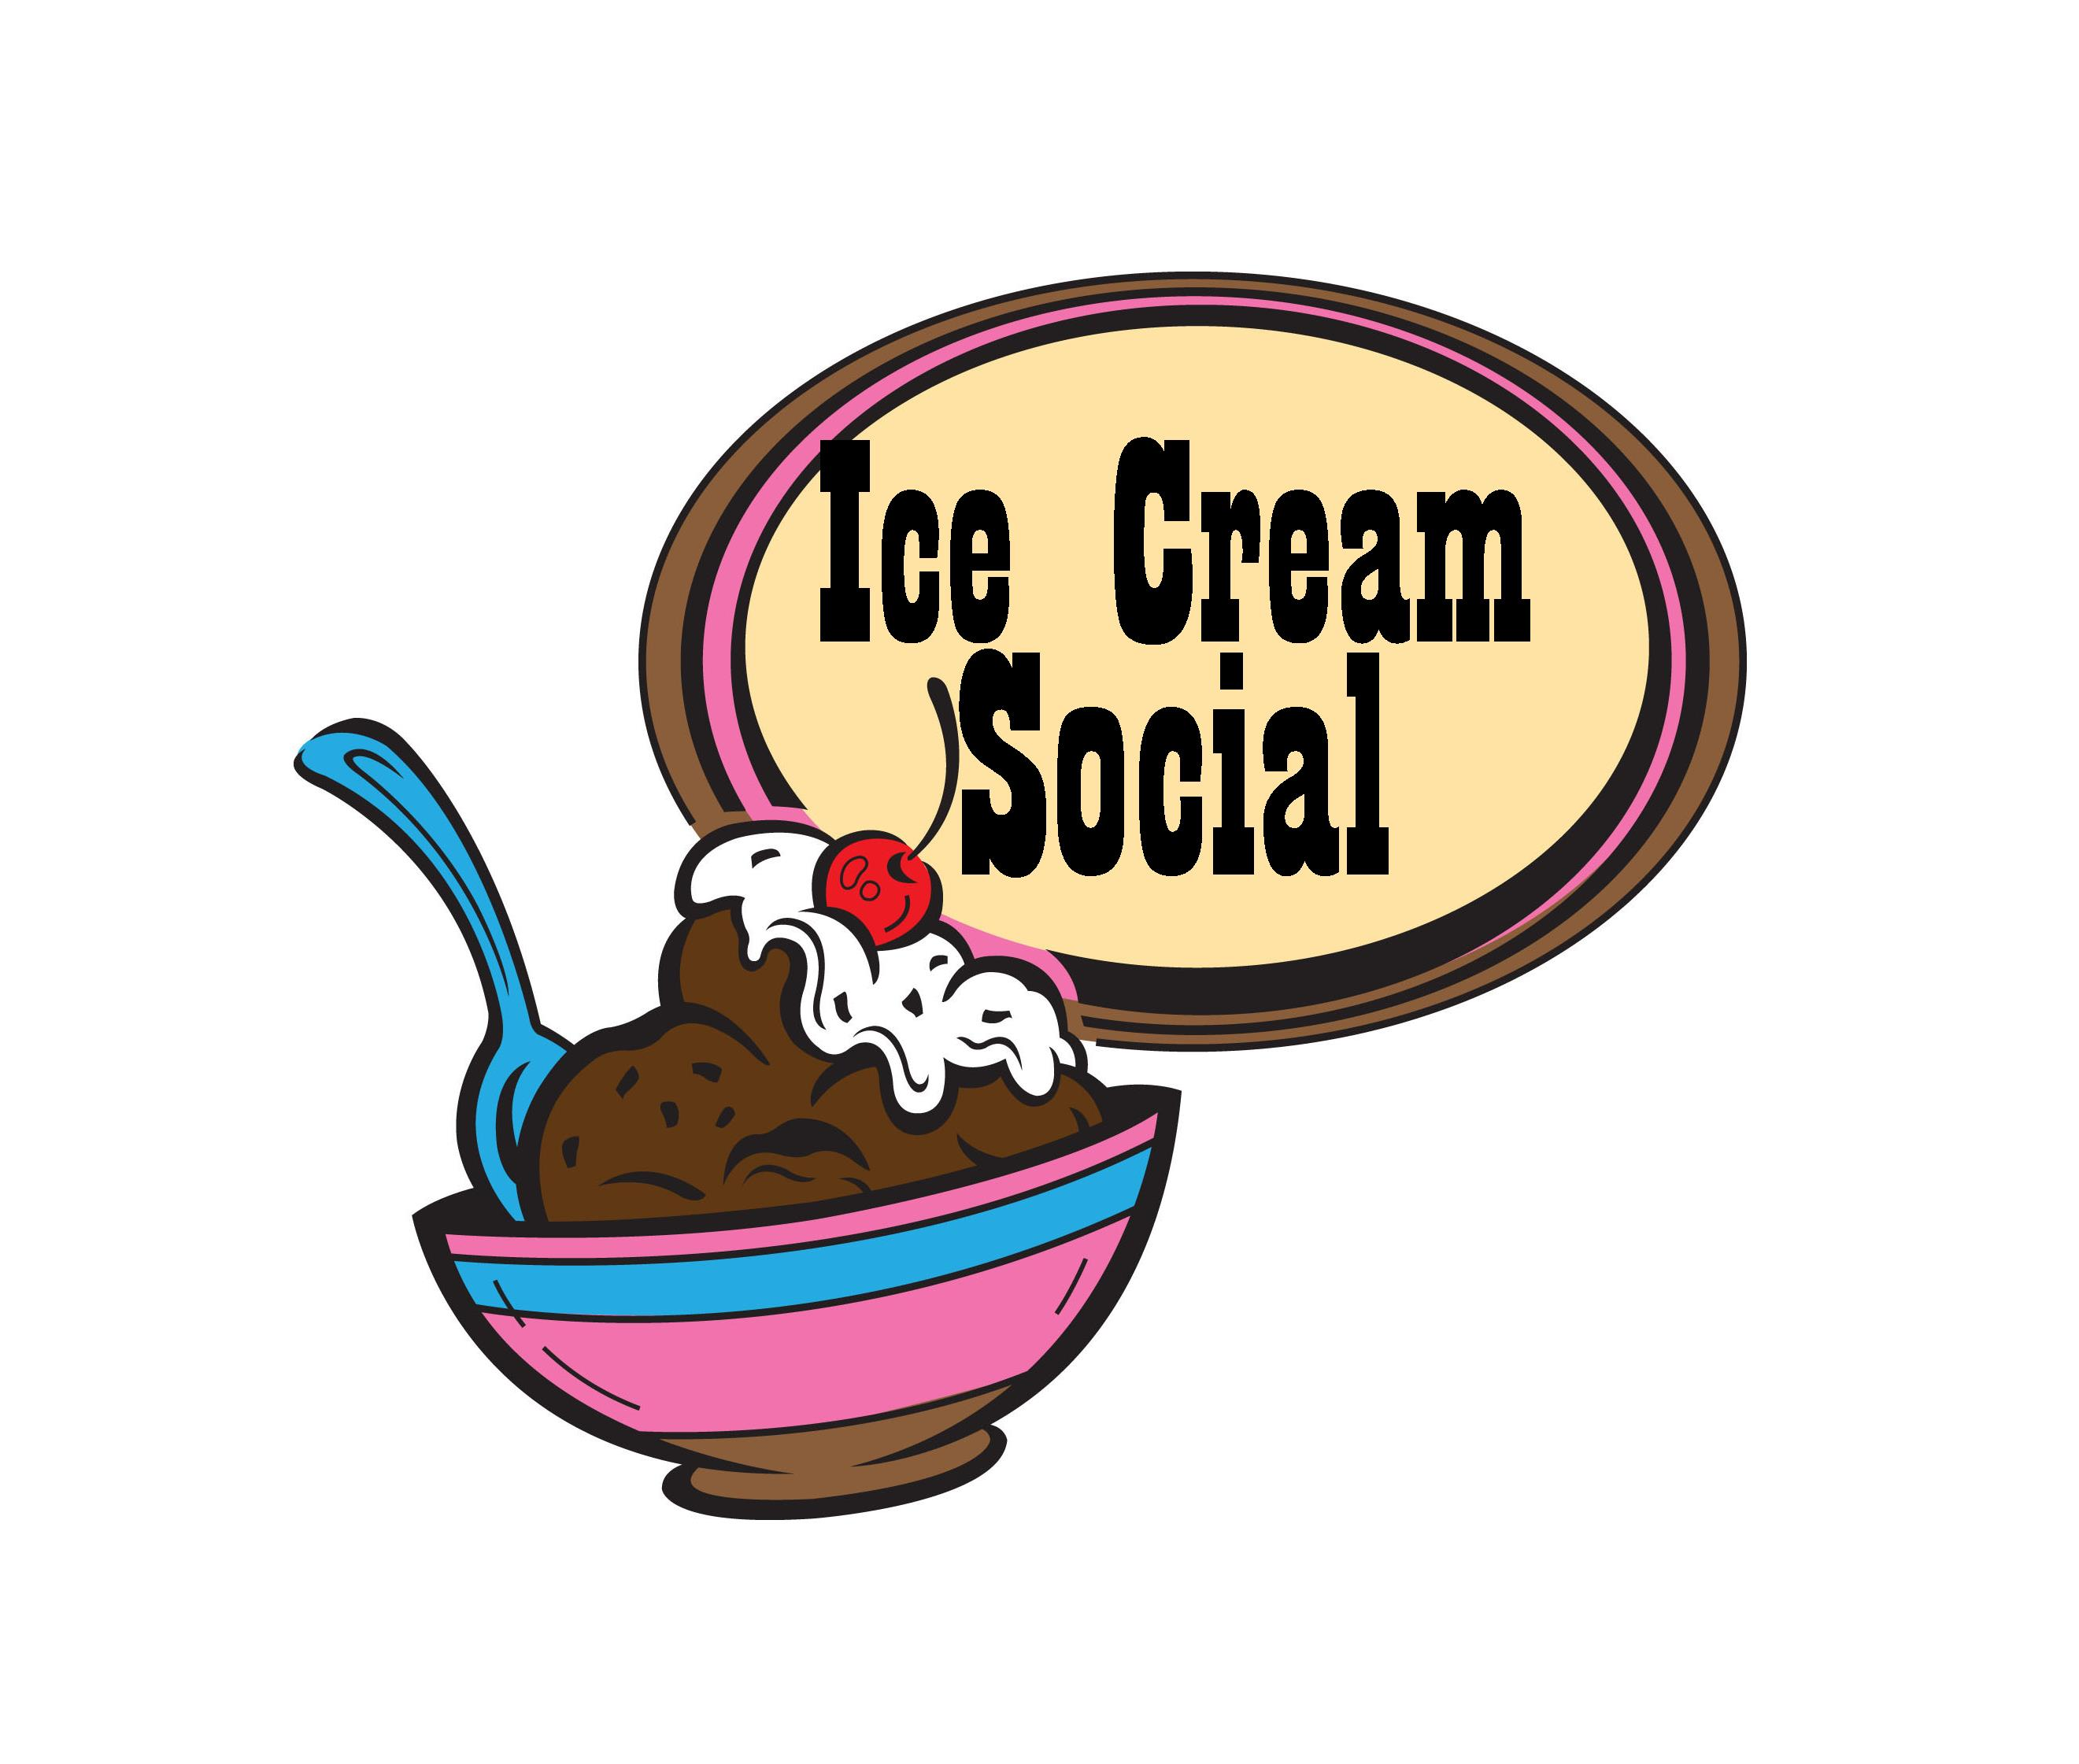 ice cream sundae clipart at getdrawings com free for personal use rh getdrawings com